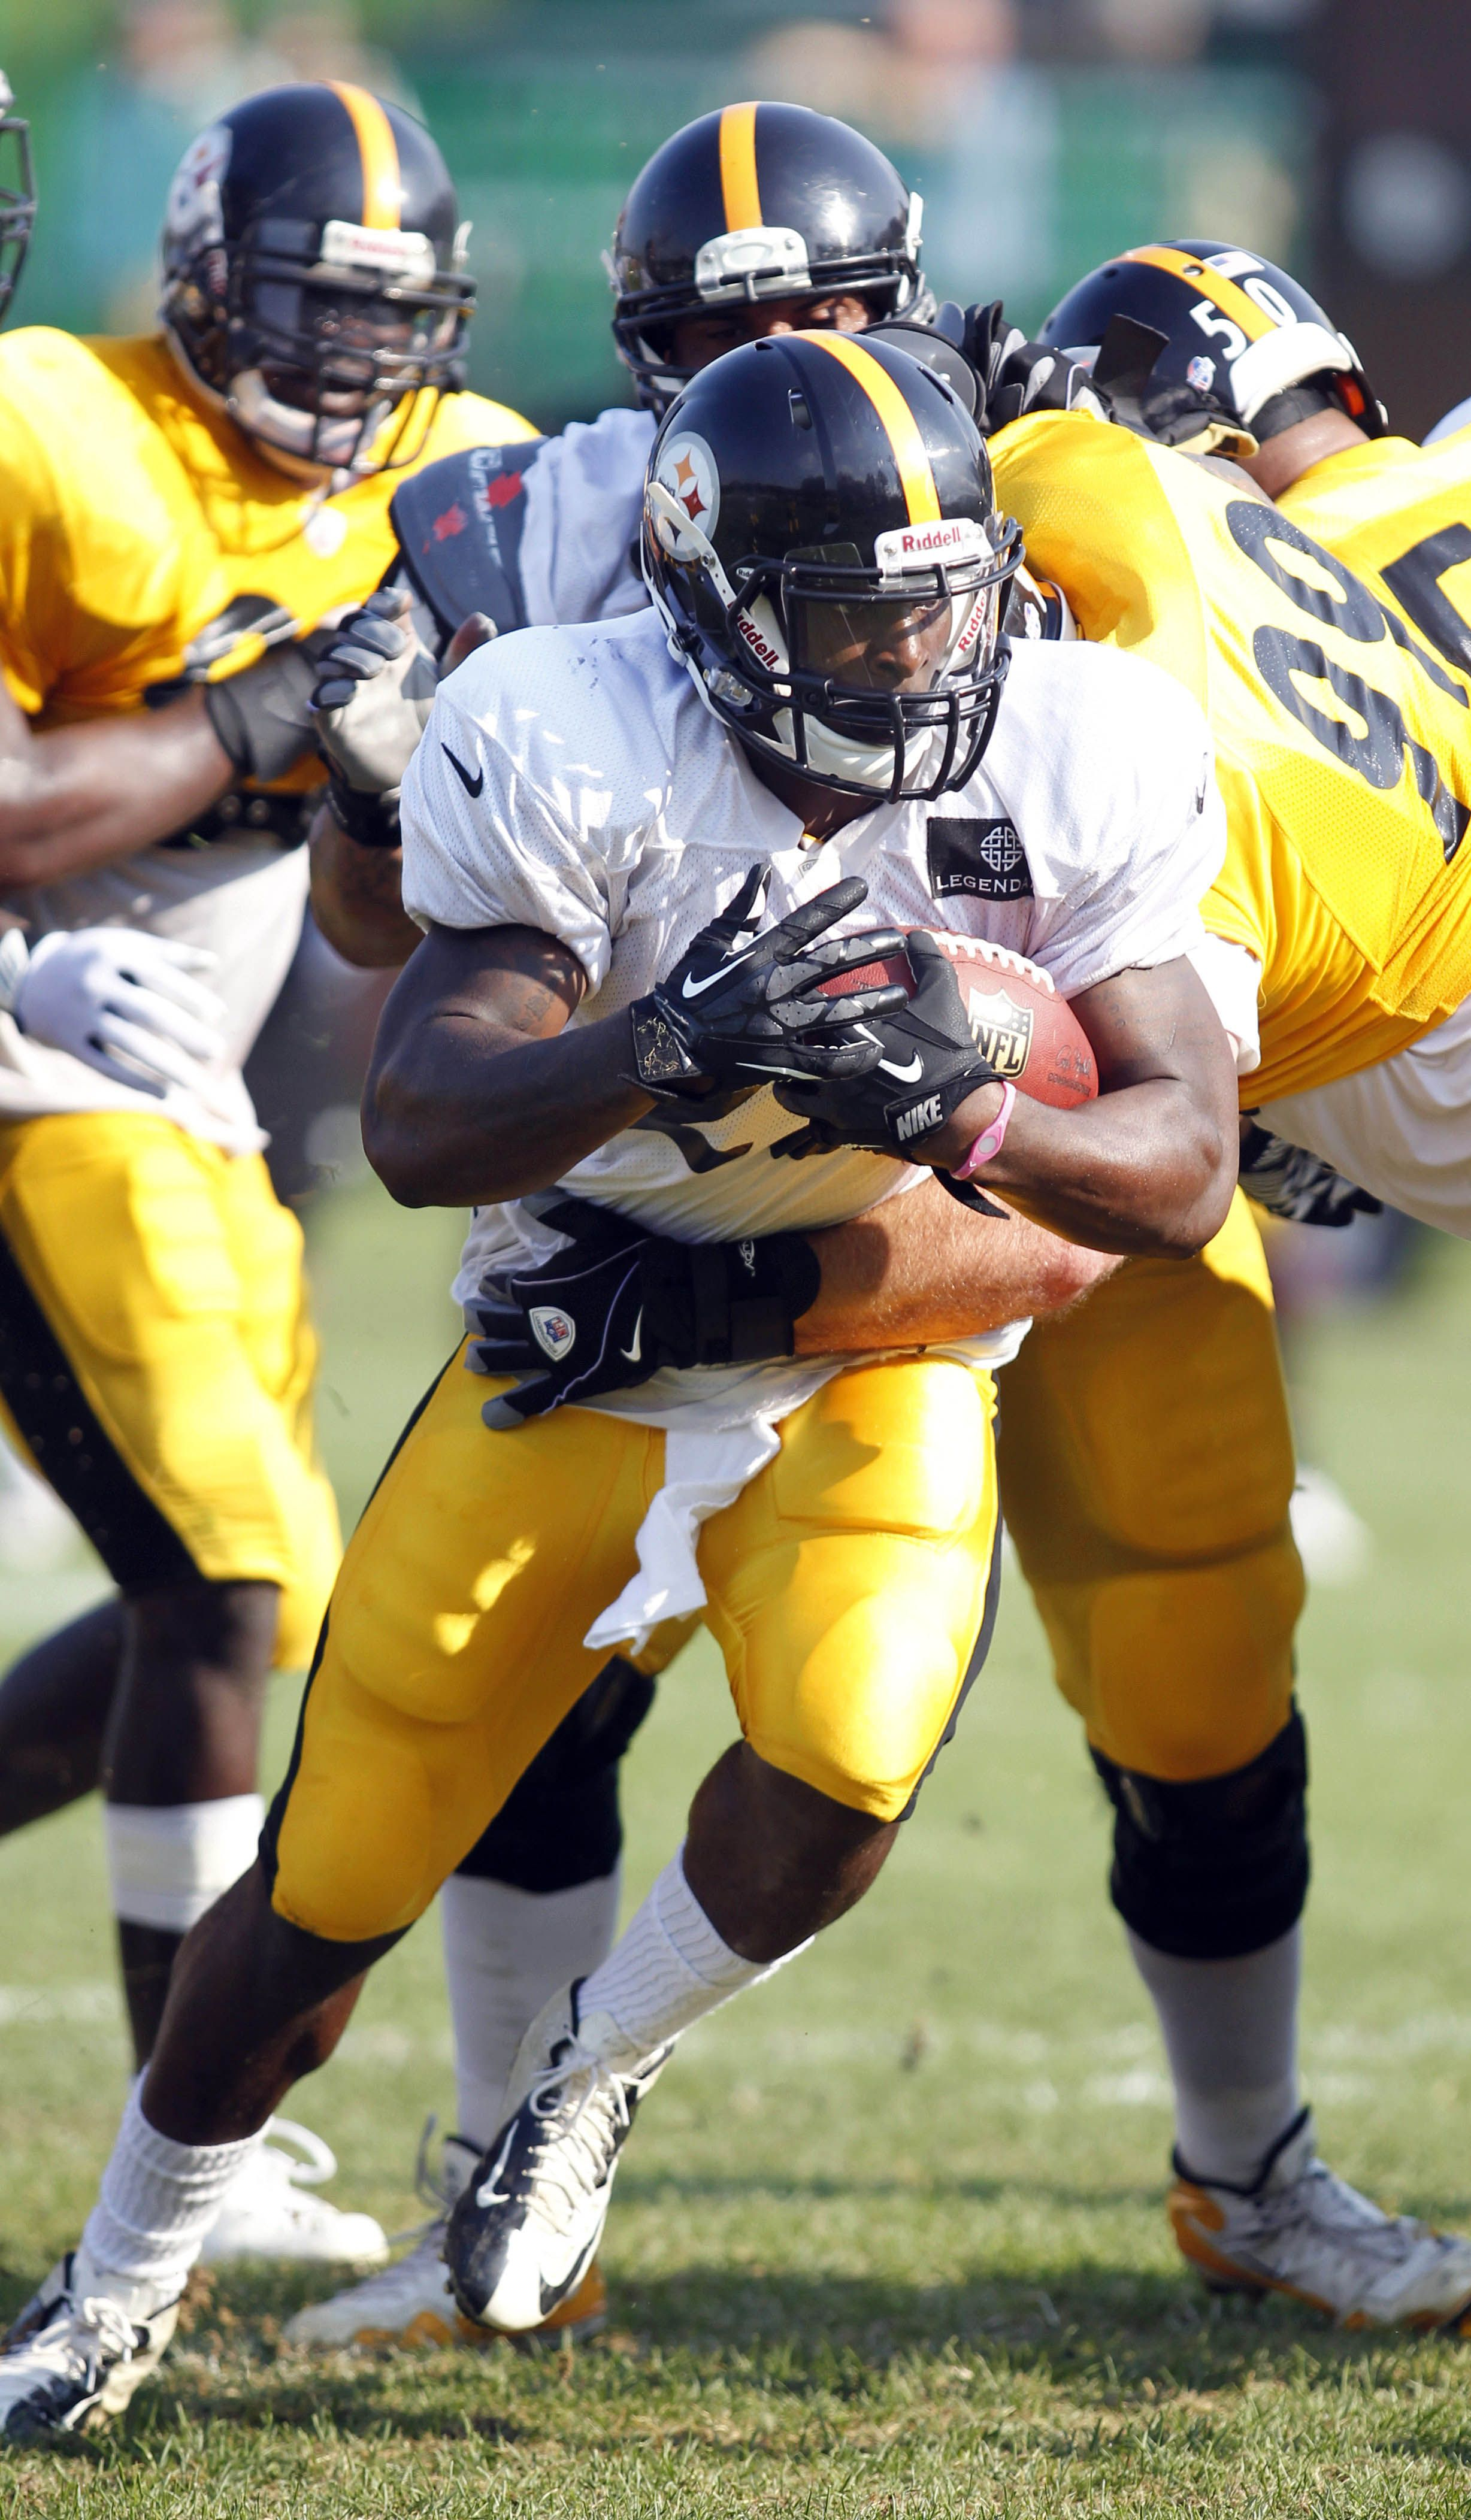 Pittsburgh Steelers running back Le'Veon Bell carries the ball during training camp drills at Saint Vincent College.